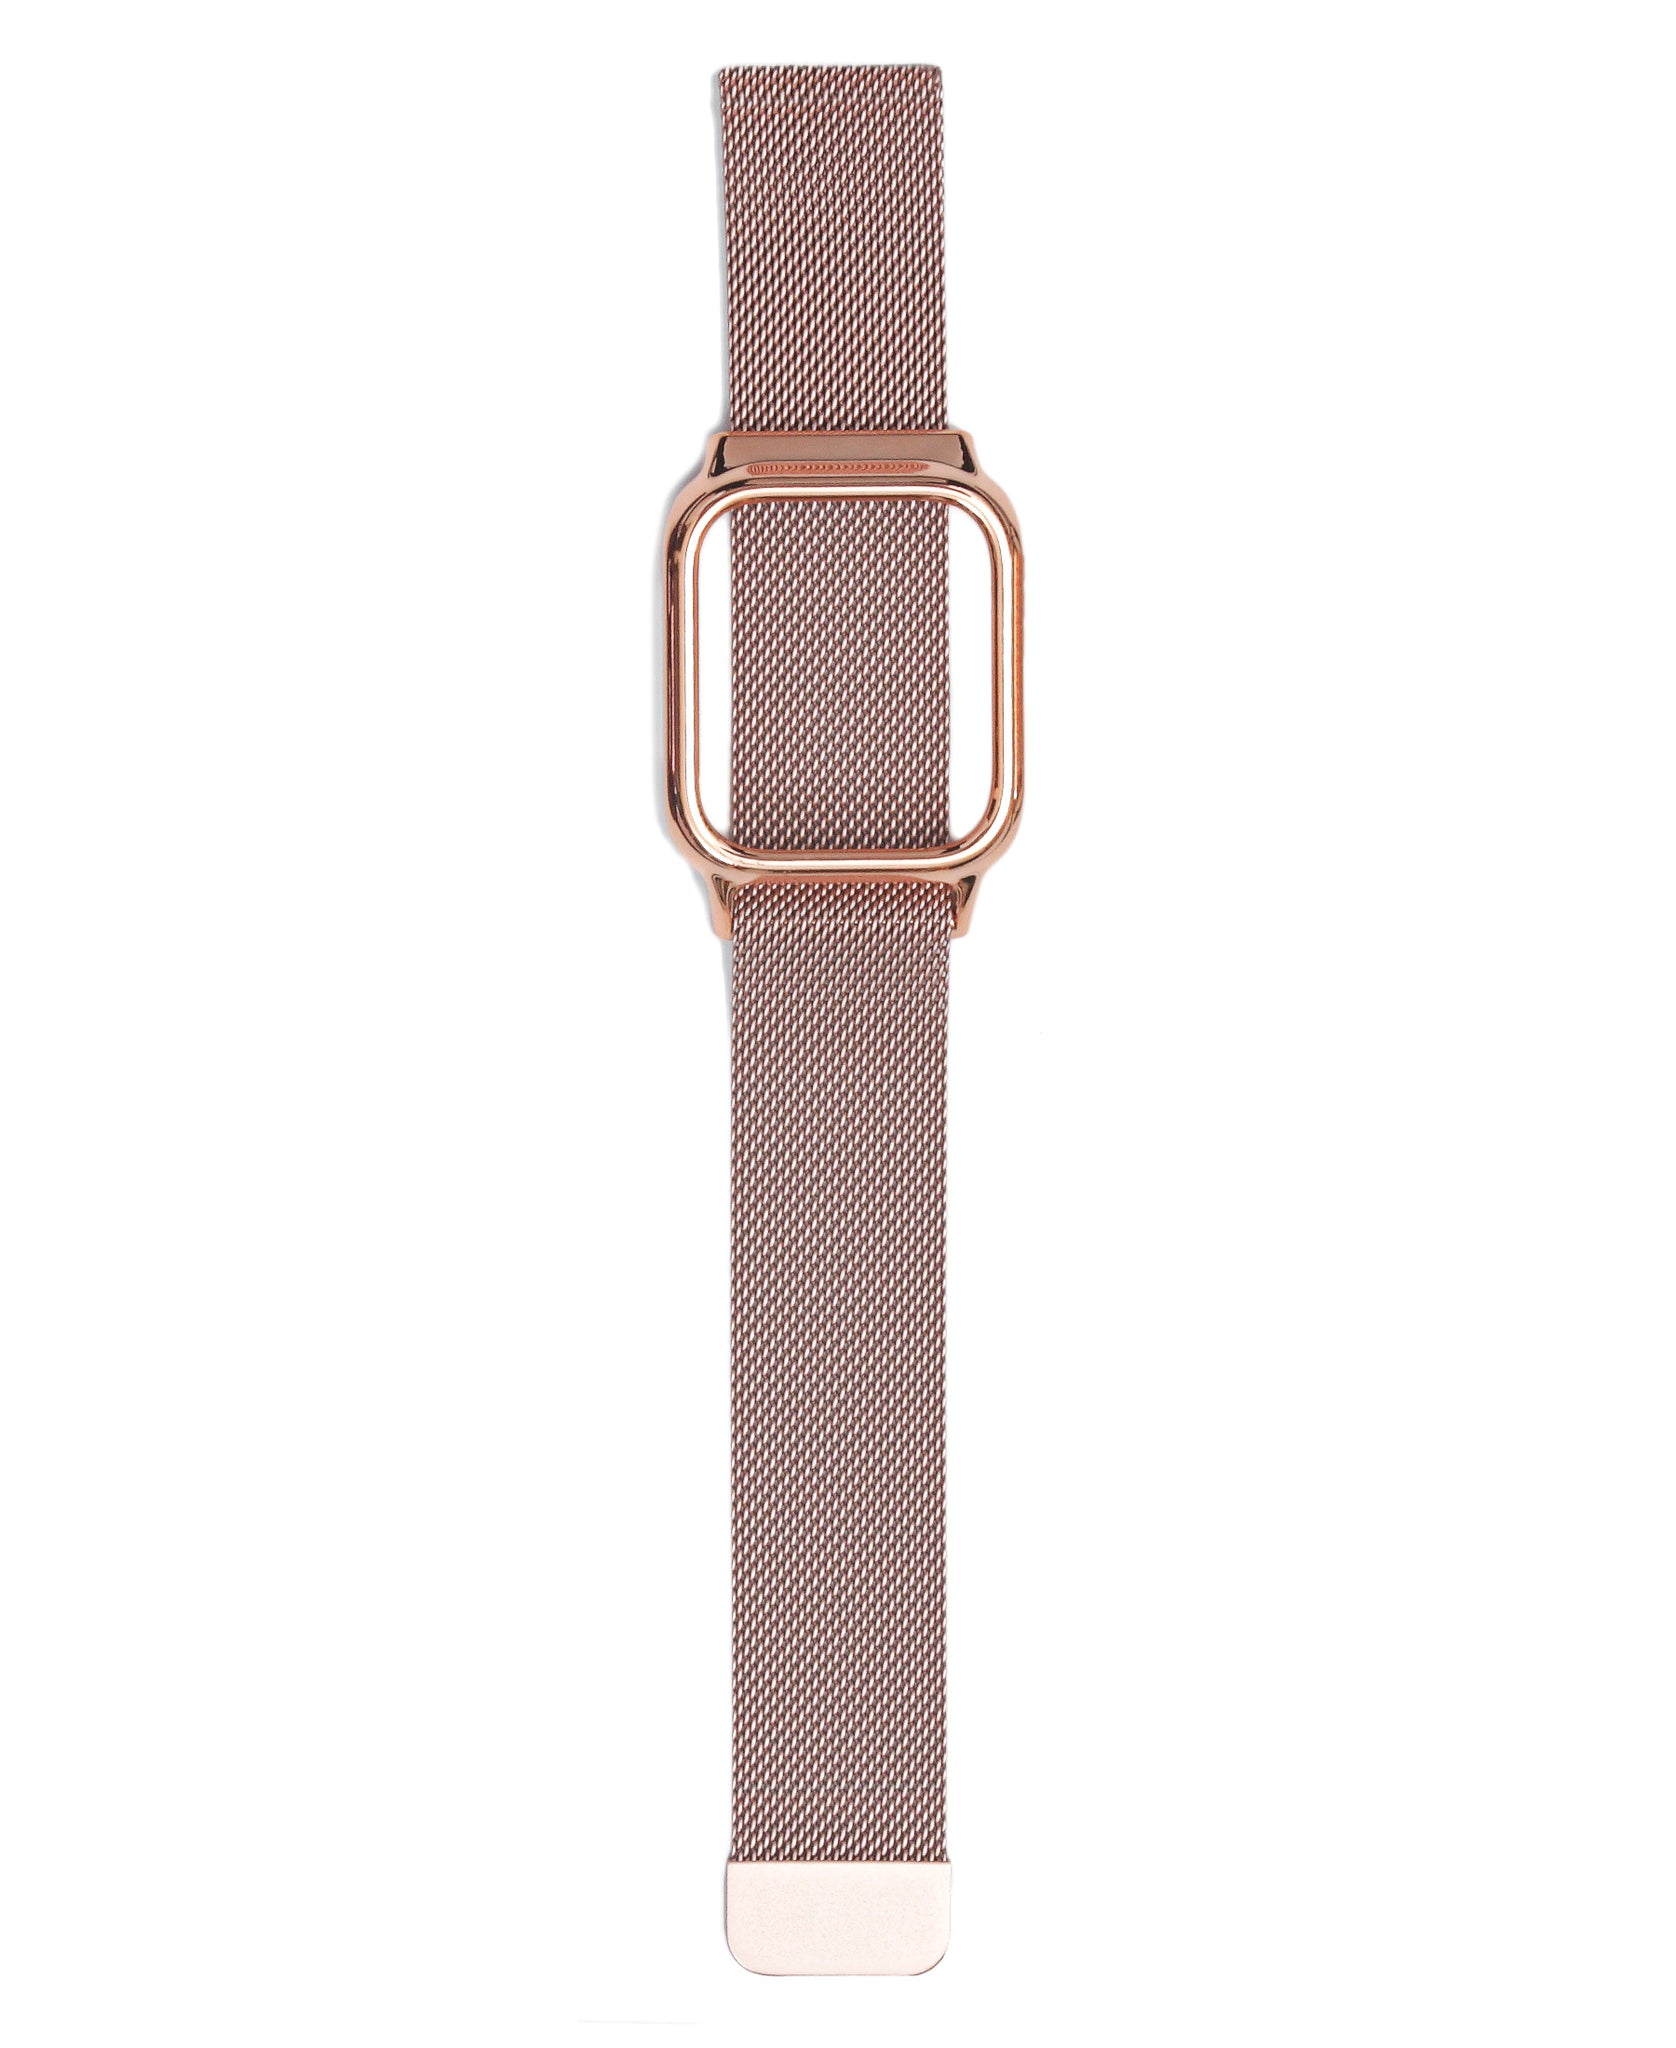 40mm Apple Watch Band With Cover - Rose Gold